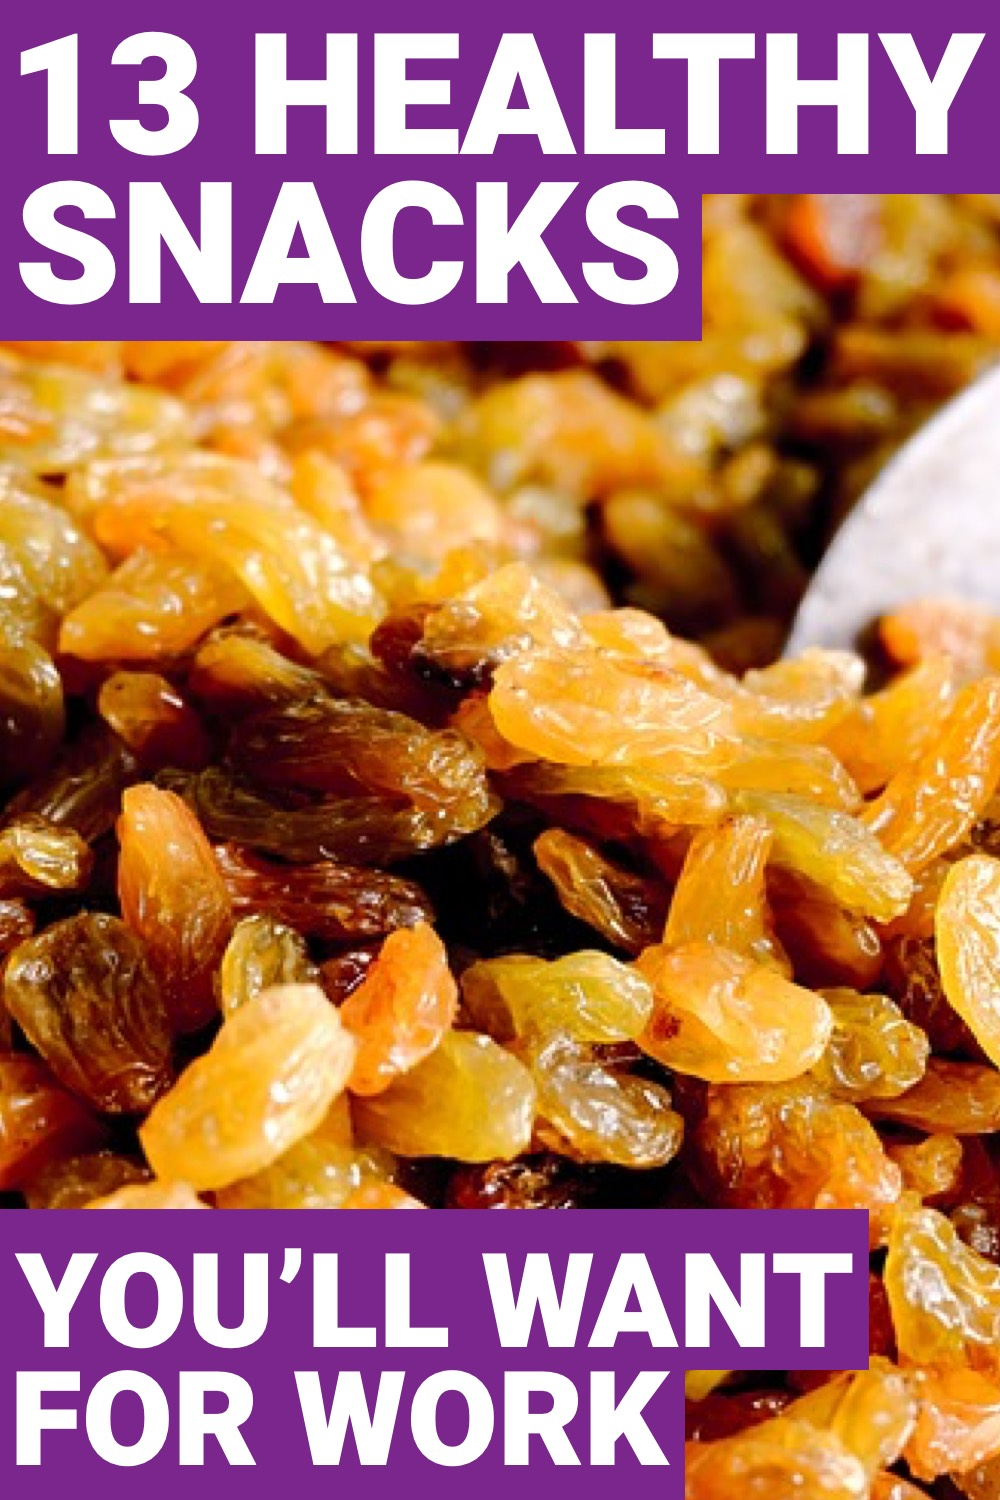 If you're looking to be healthy at work, you need to make sure you have healthy snacks. Here are 13 healthy snacks for work.